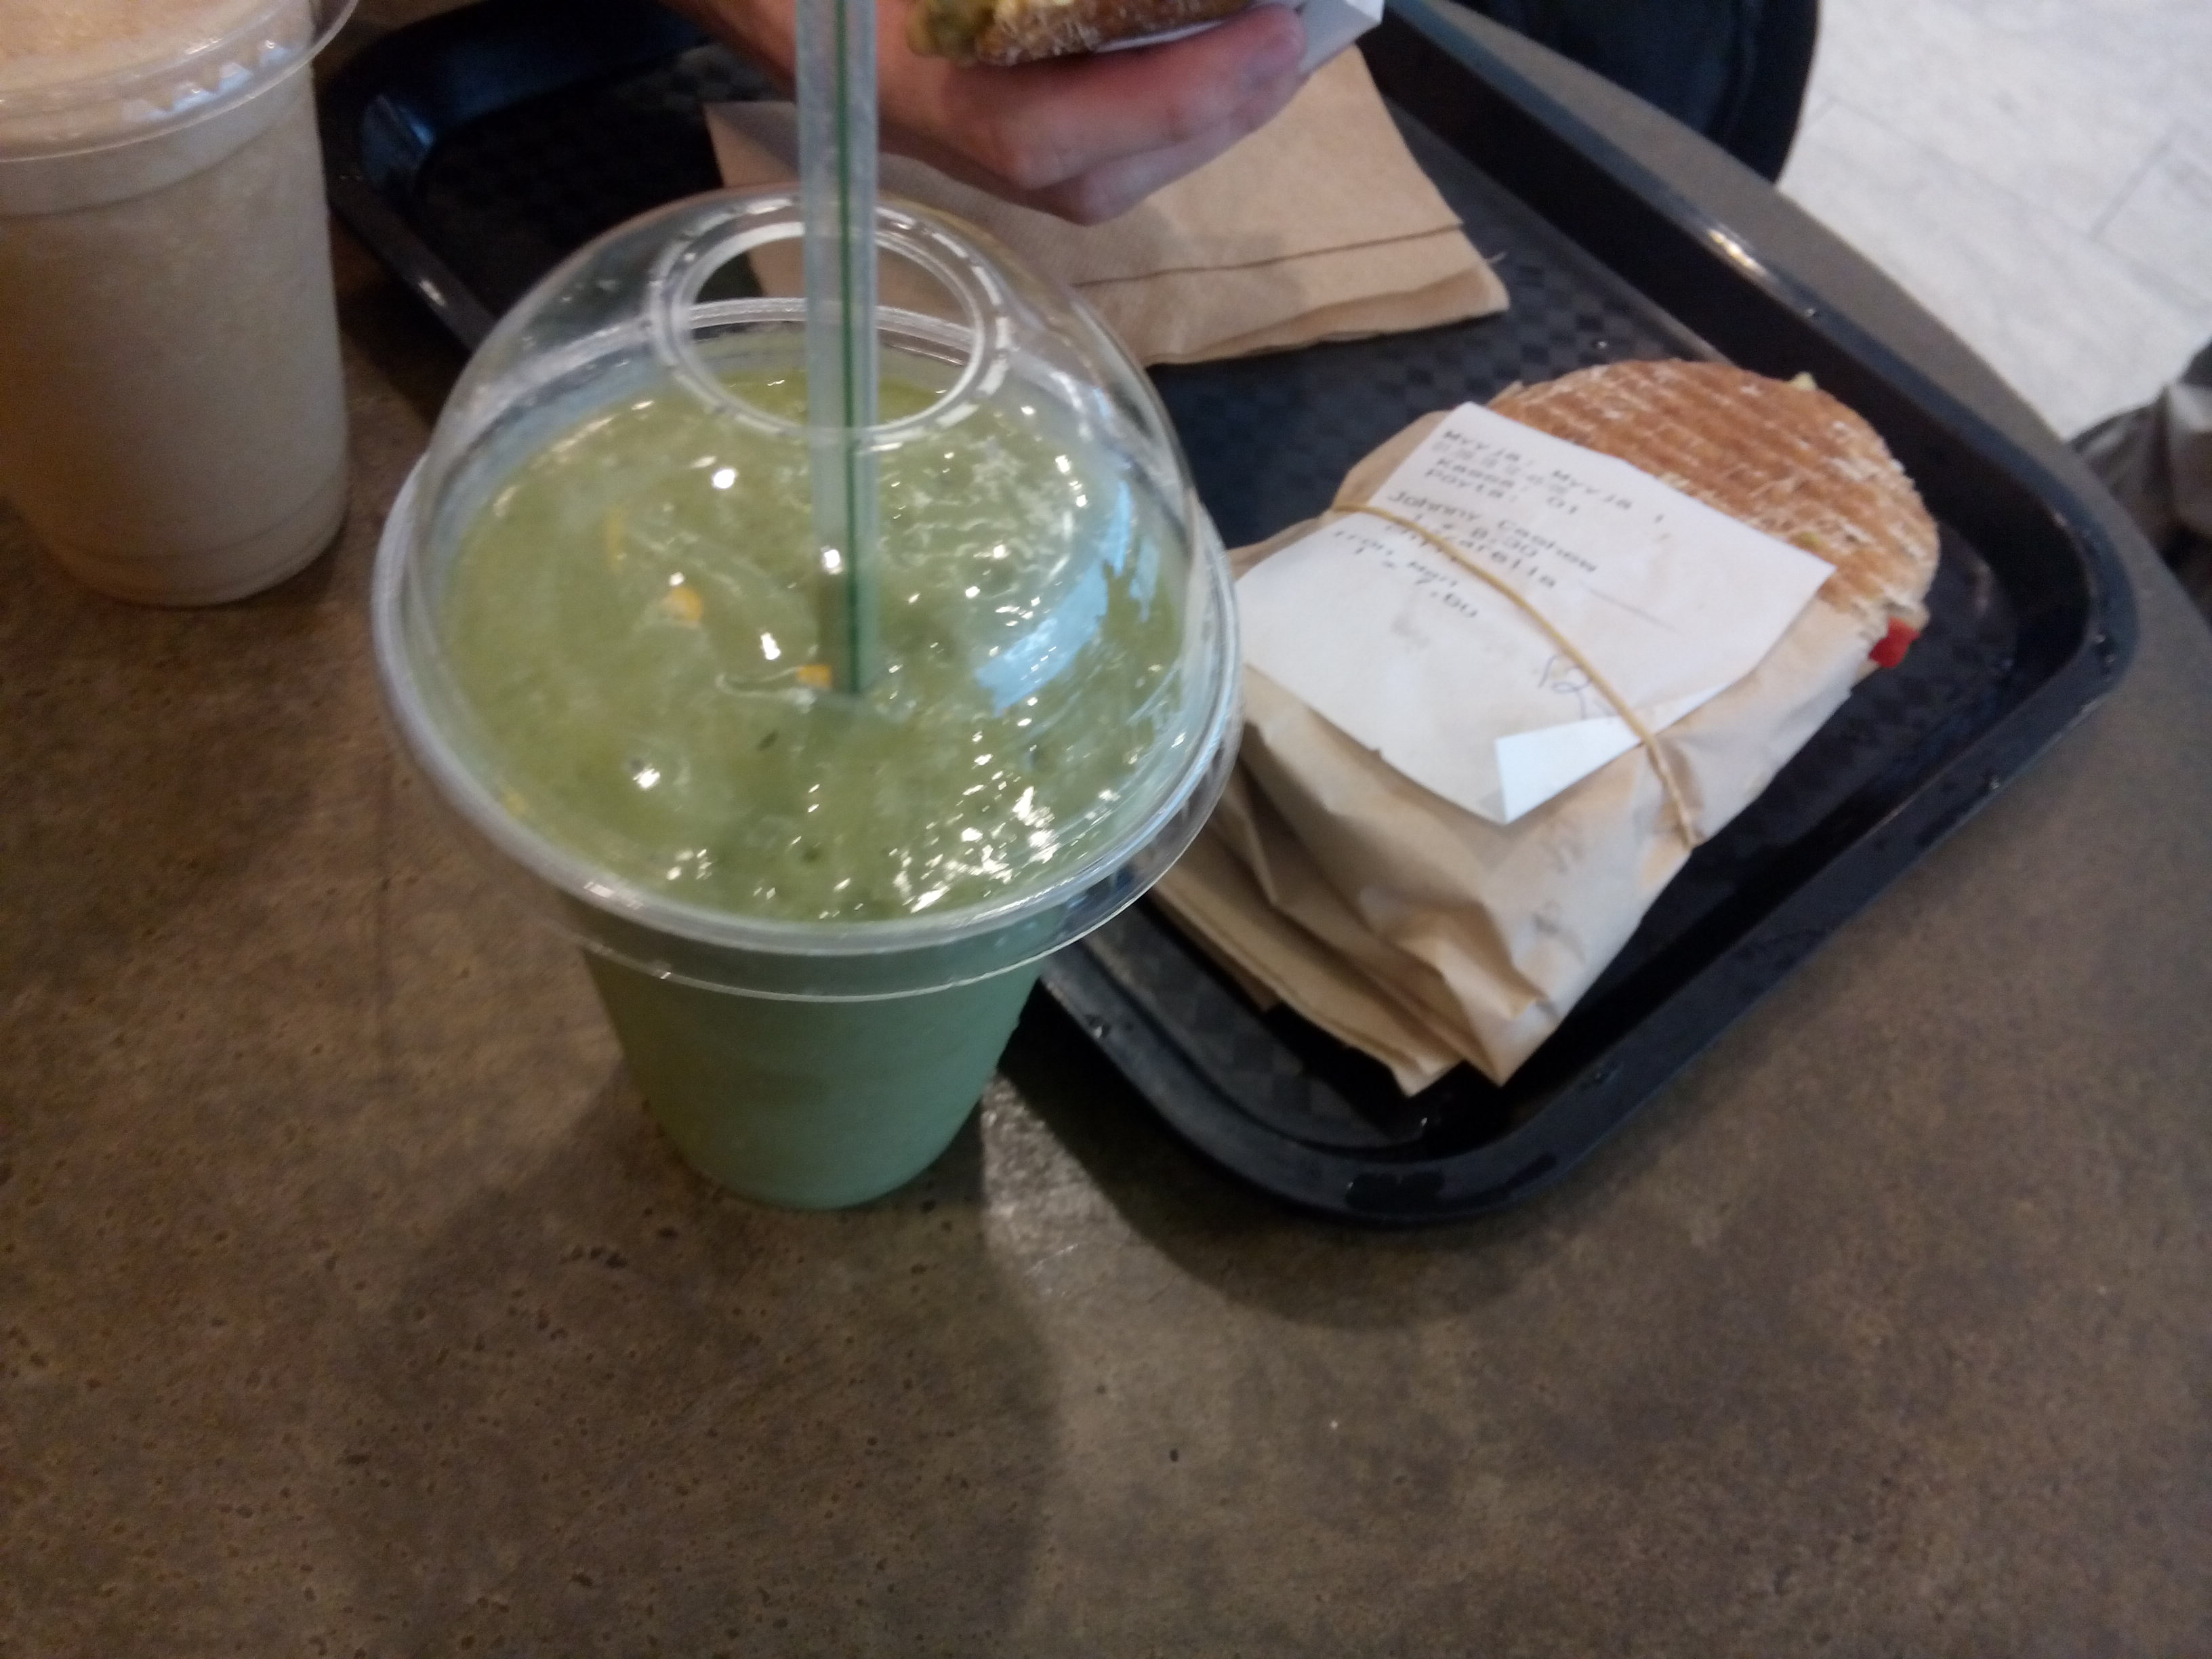 A plastic smoothie cup filled with green beside a plastic tray with a wrapped toasted sandwich